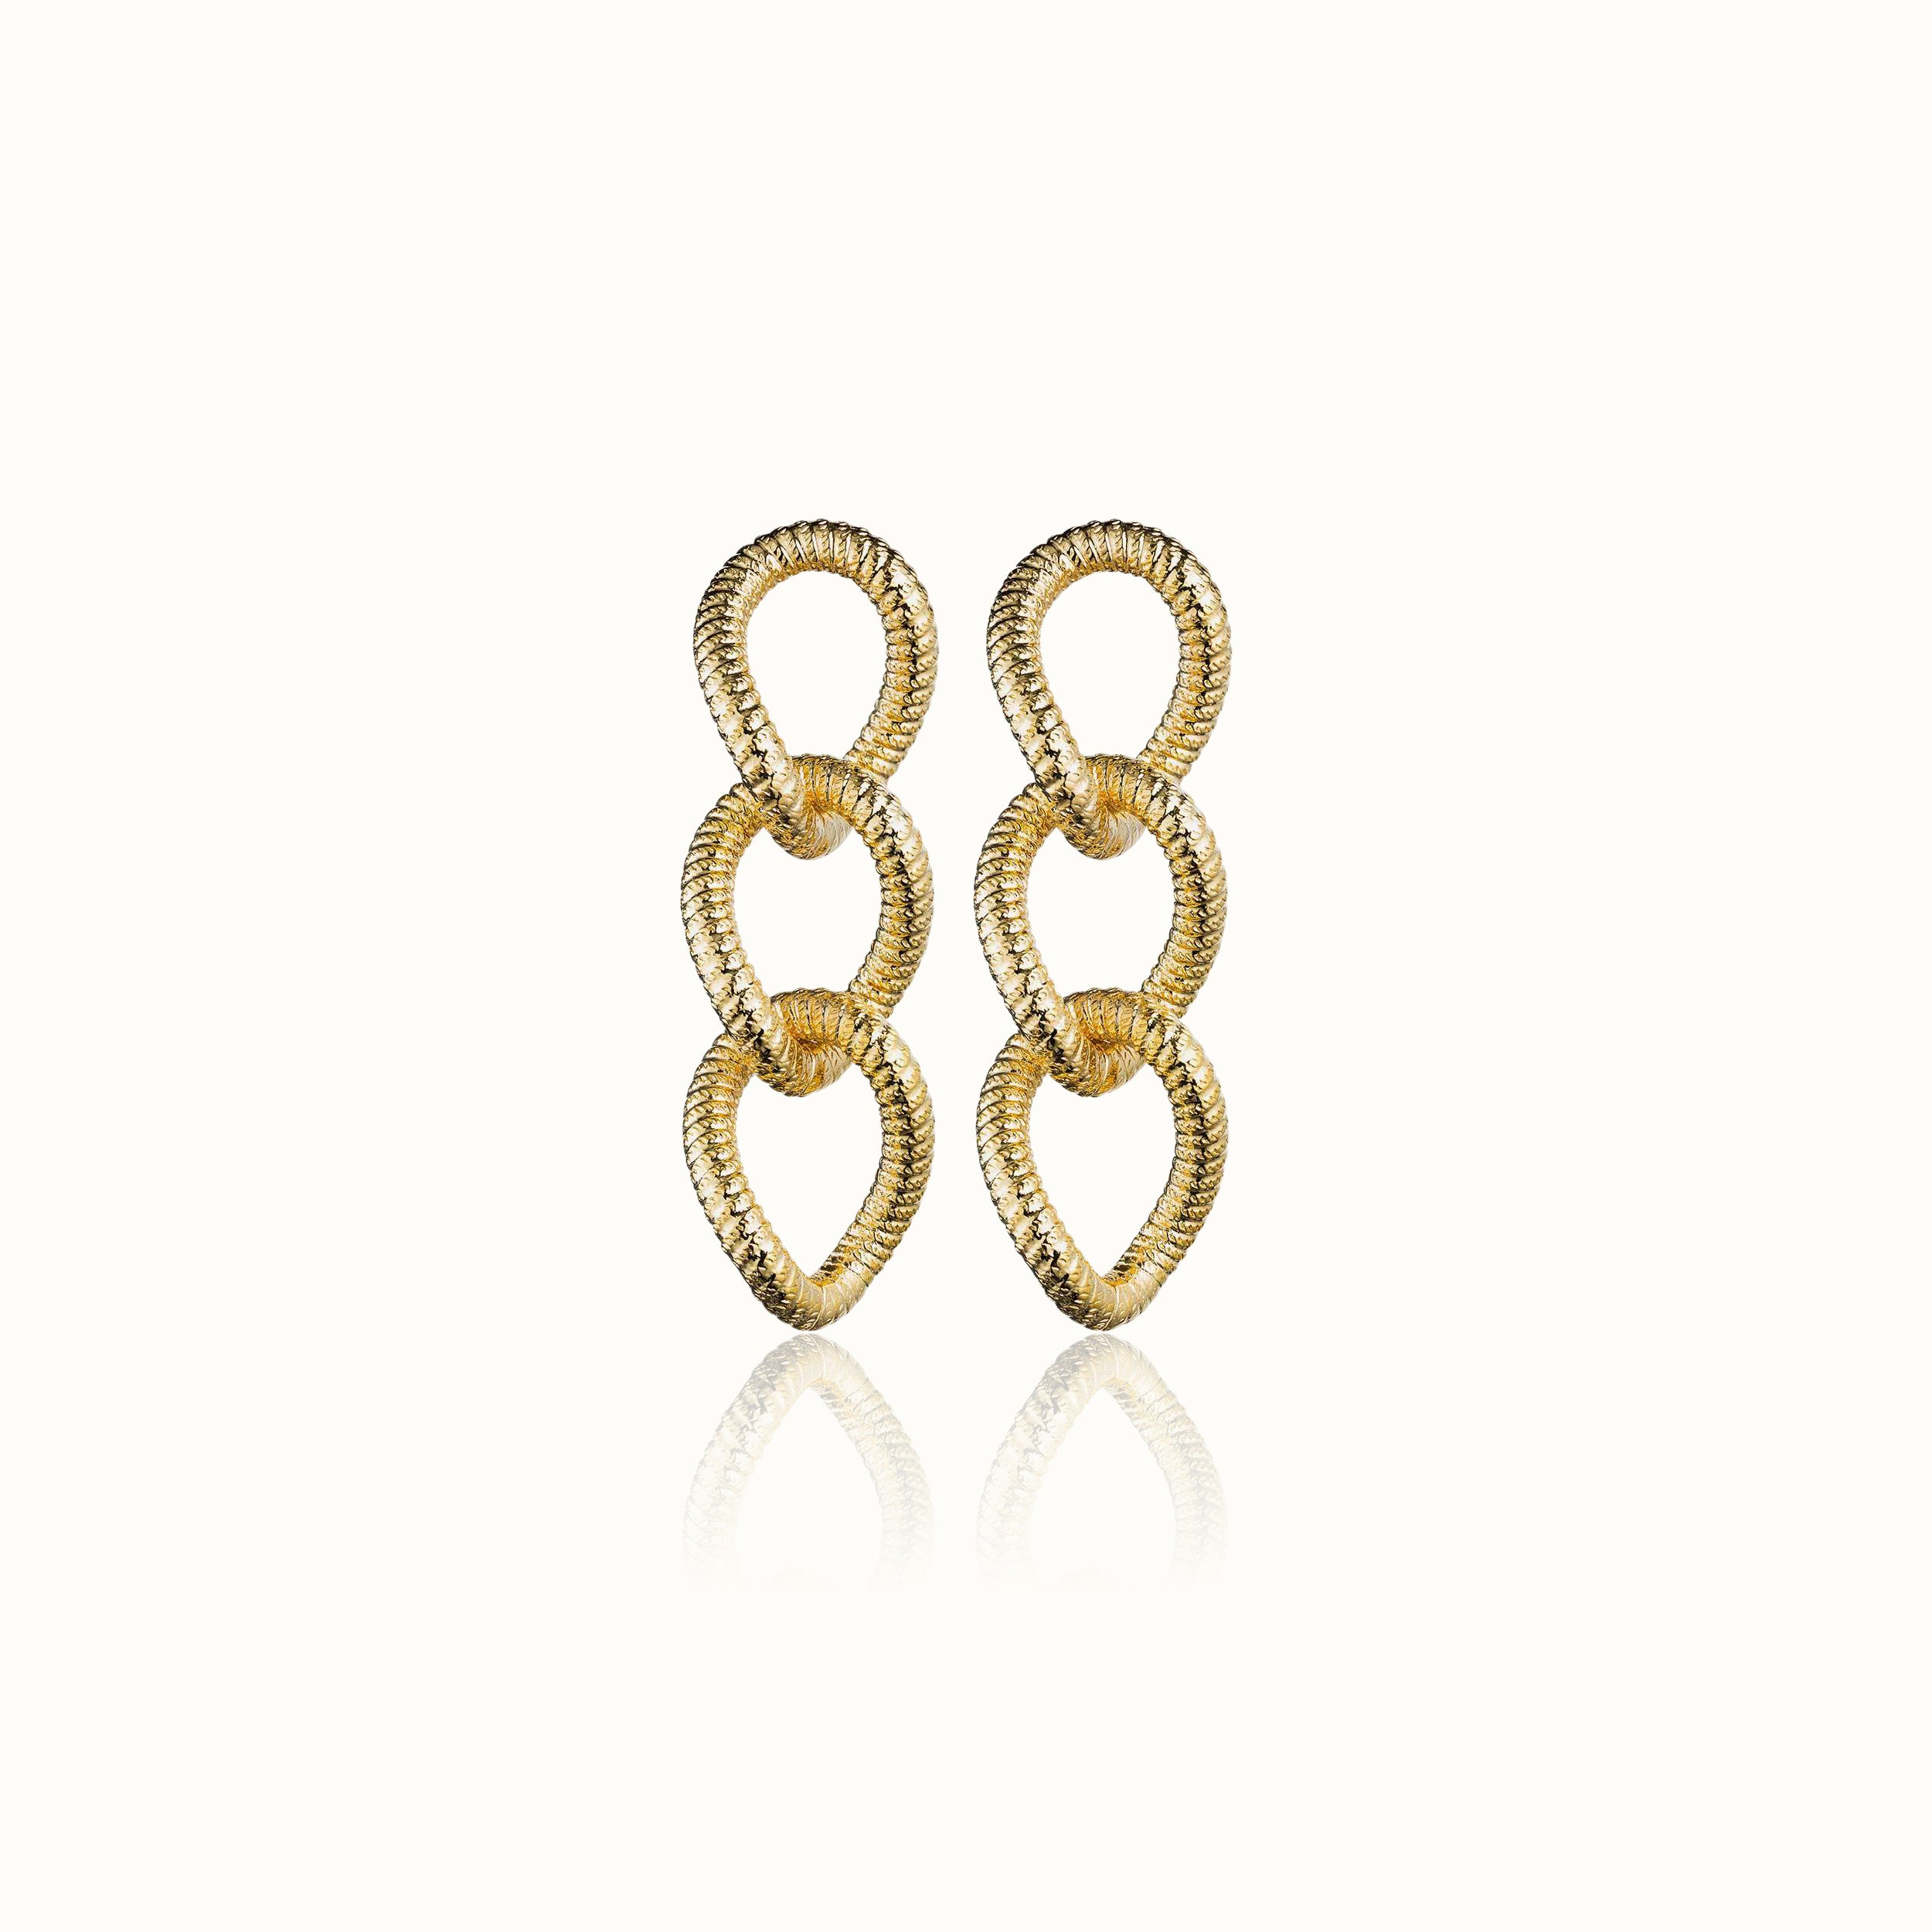 Raffina Earrings